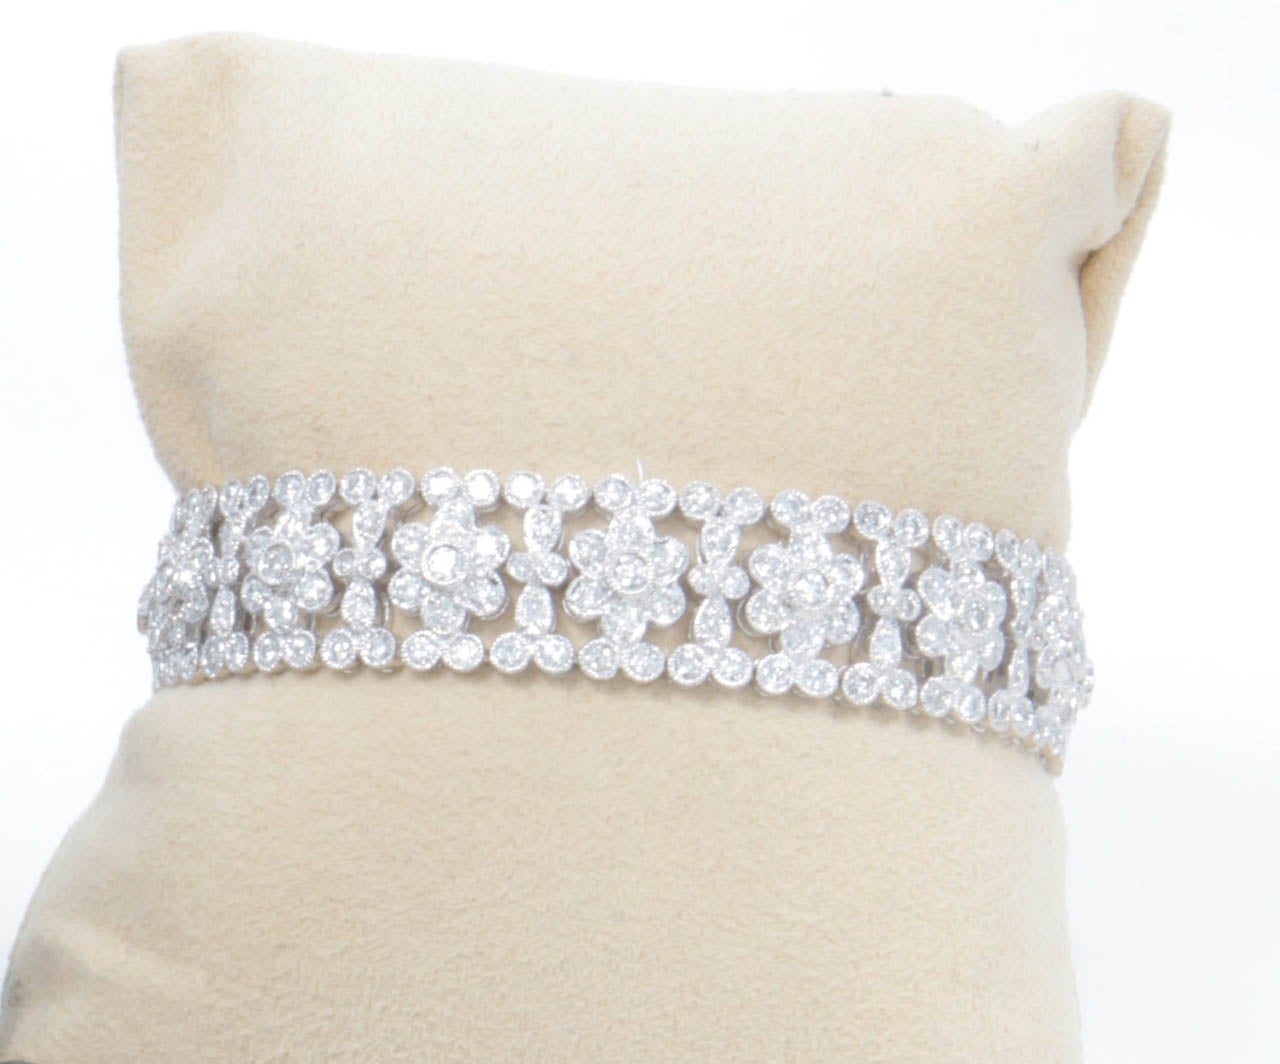 Engraved Diamond Floral Bracelet In Excellent Condition For Sale In New York, NY